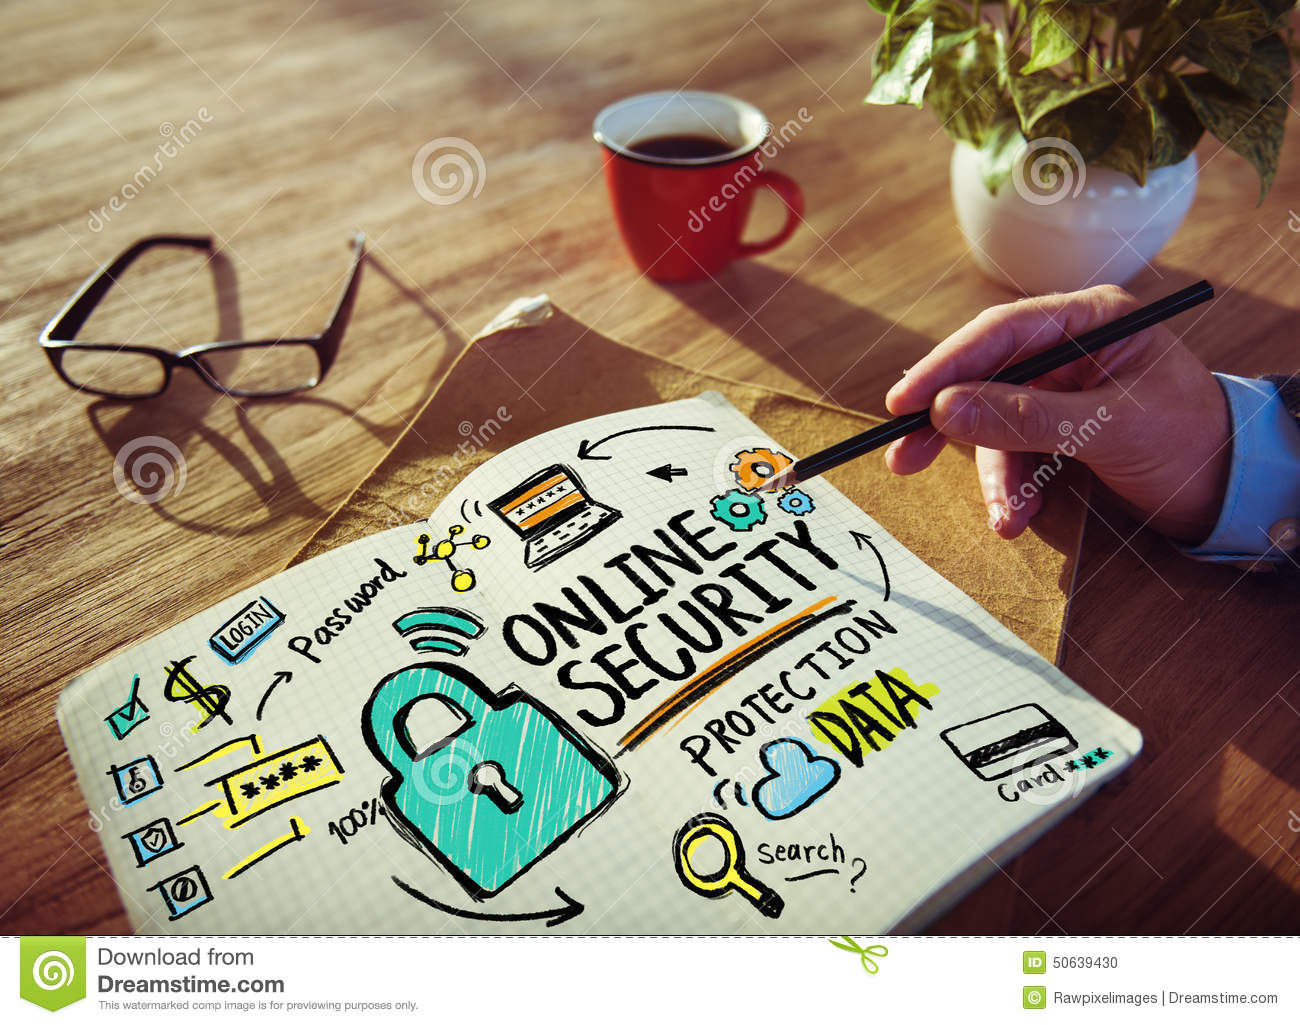 securing and protecting information essay Gain key insights and practical information in security awareness program building from experts in the field with our summits and training courses.